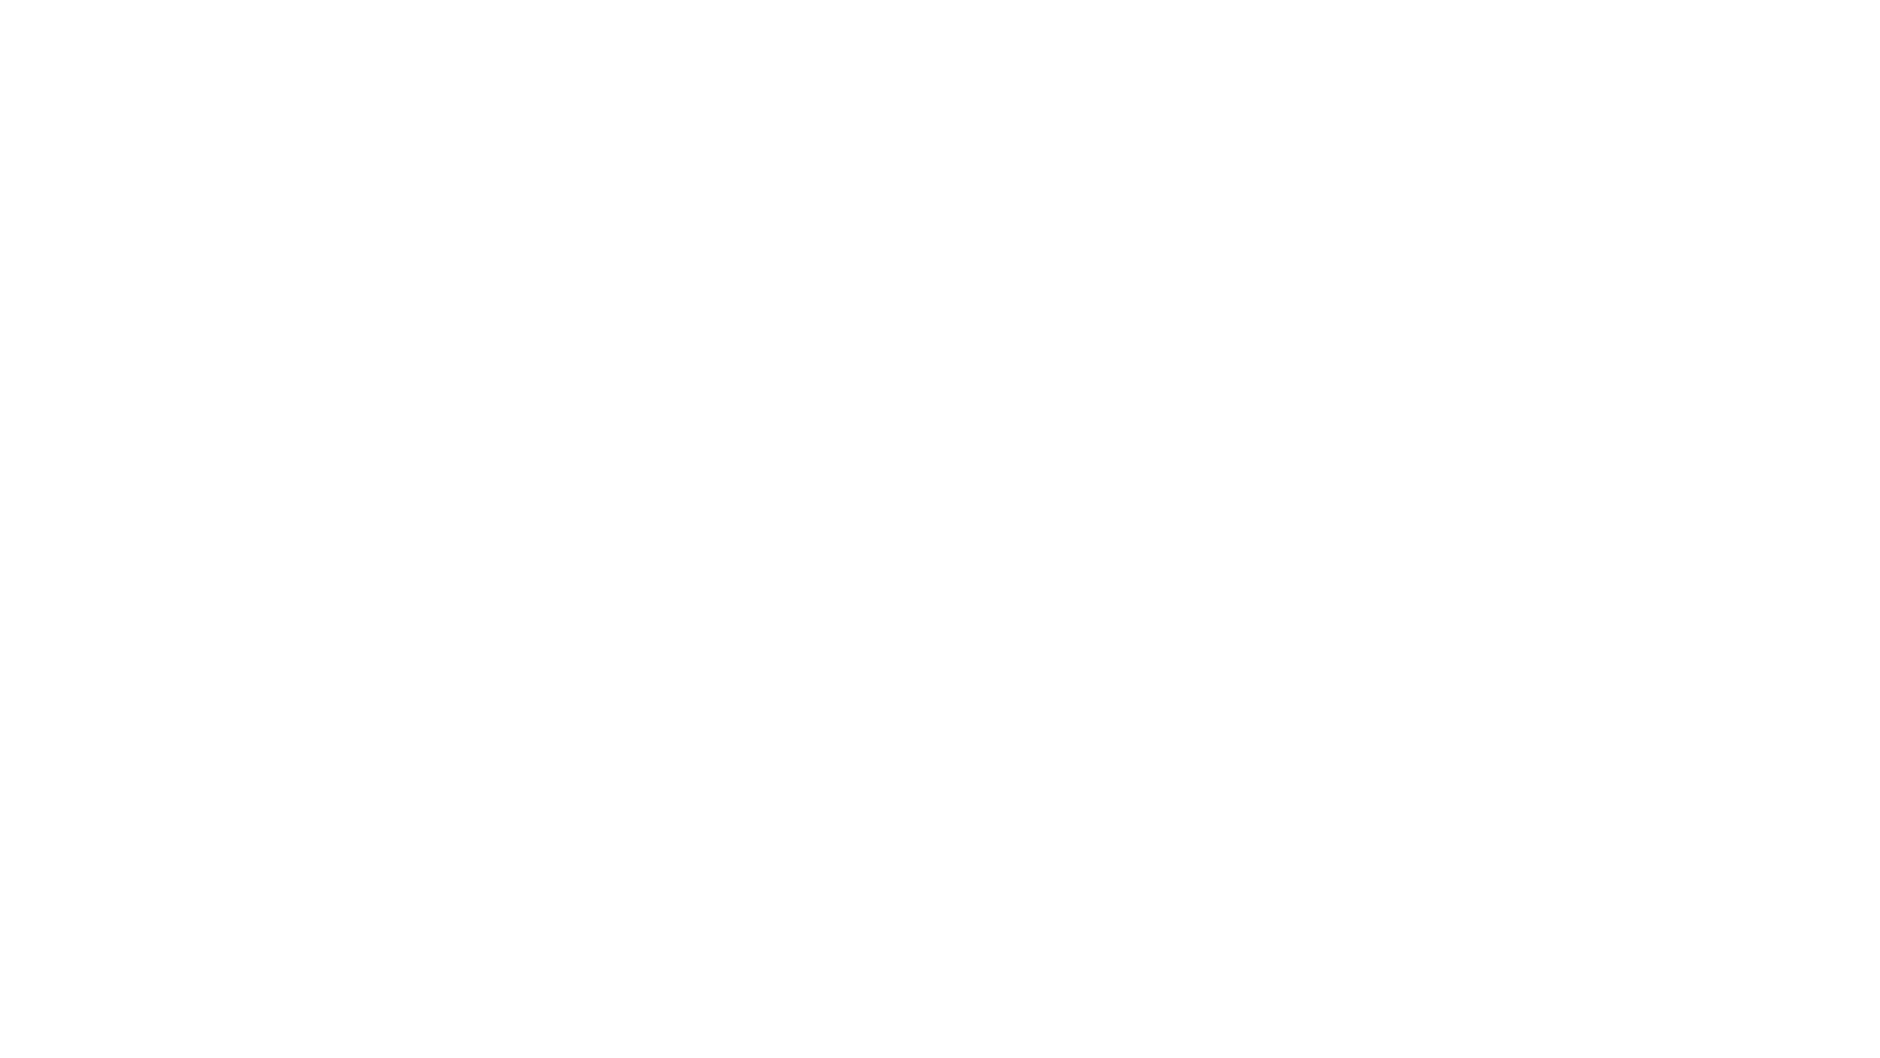 THE SHOP ONLINE #ActSafely